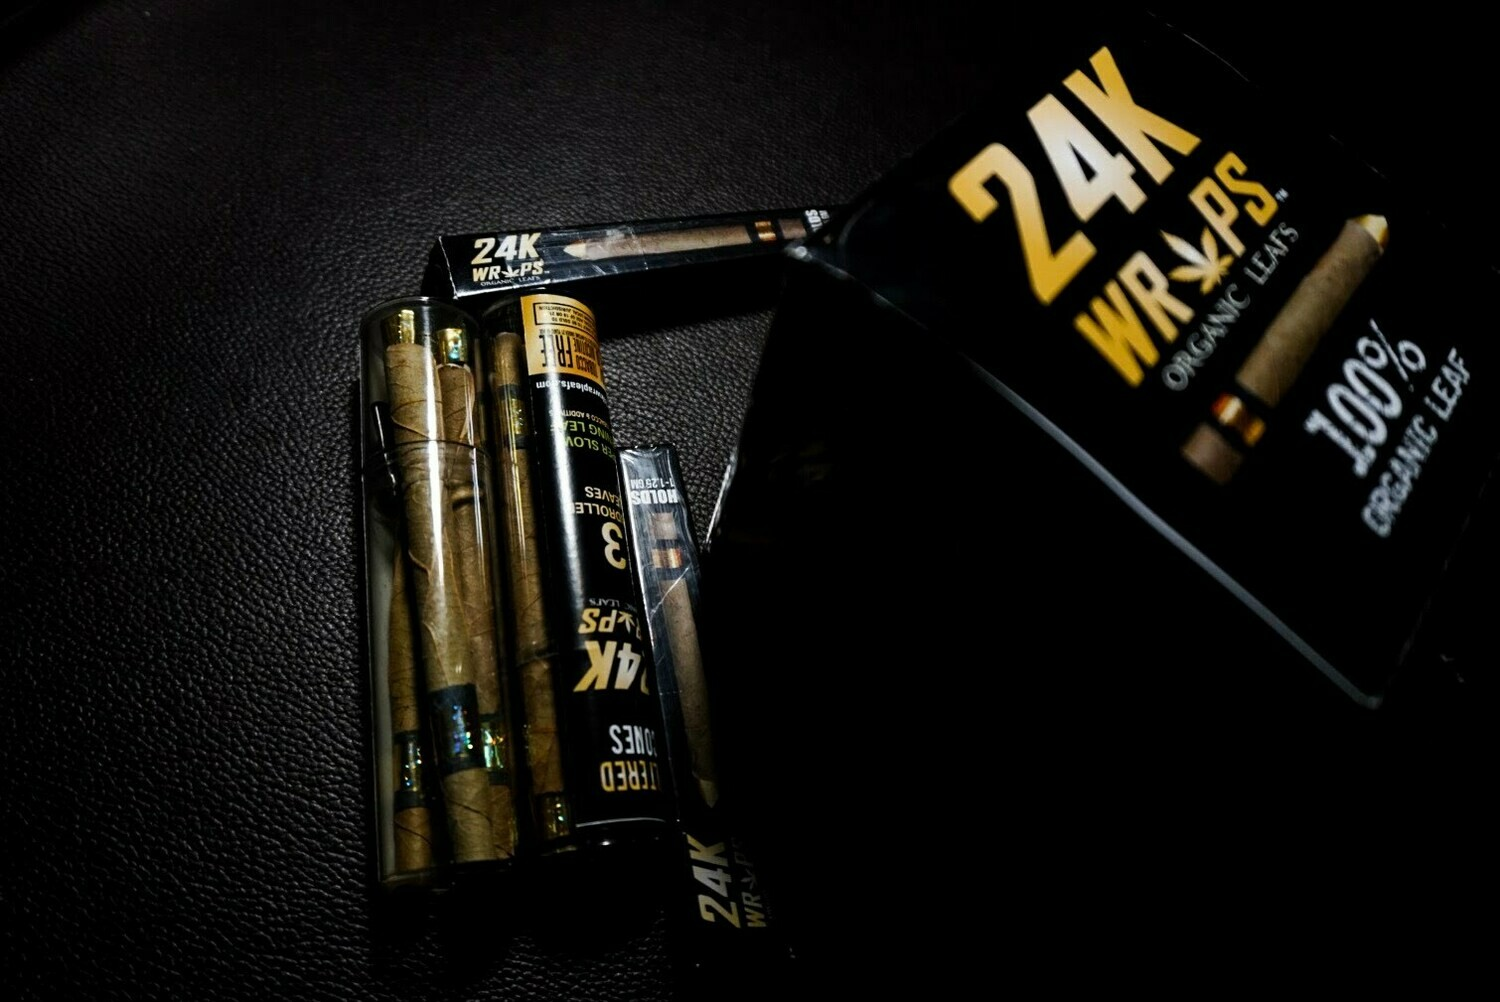 24K Wraps Packaged Singles